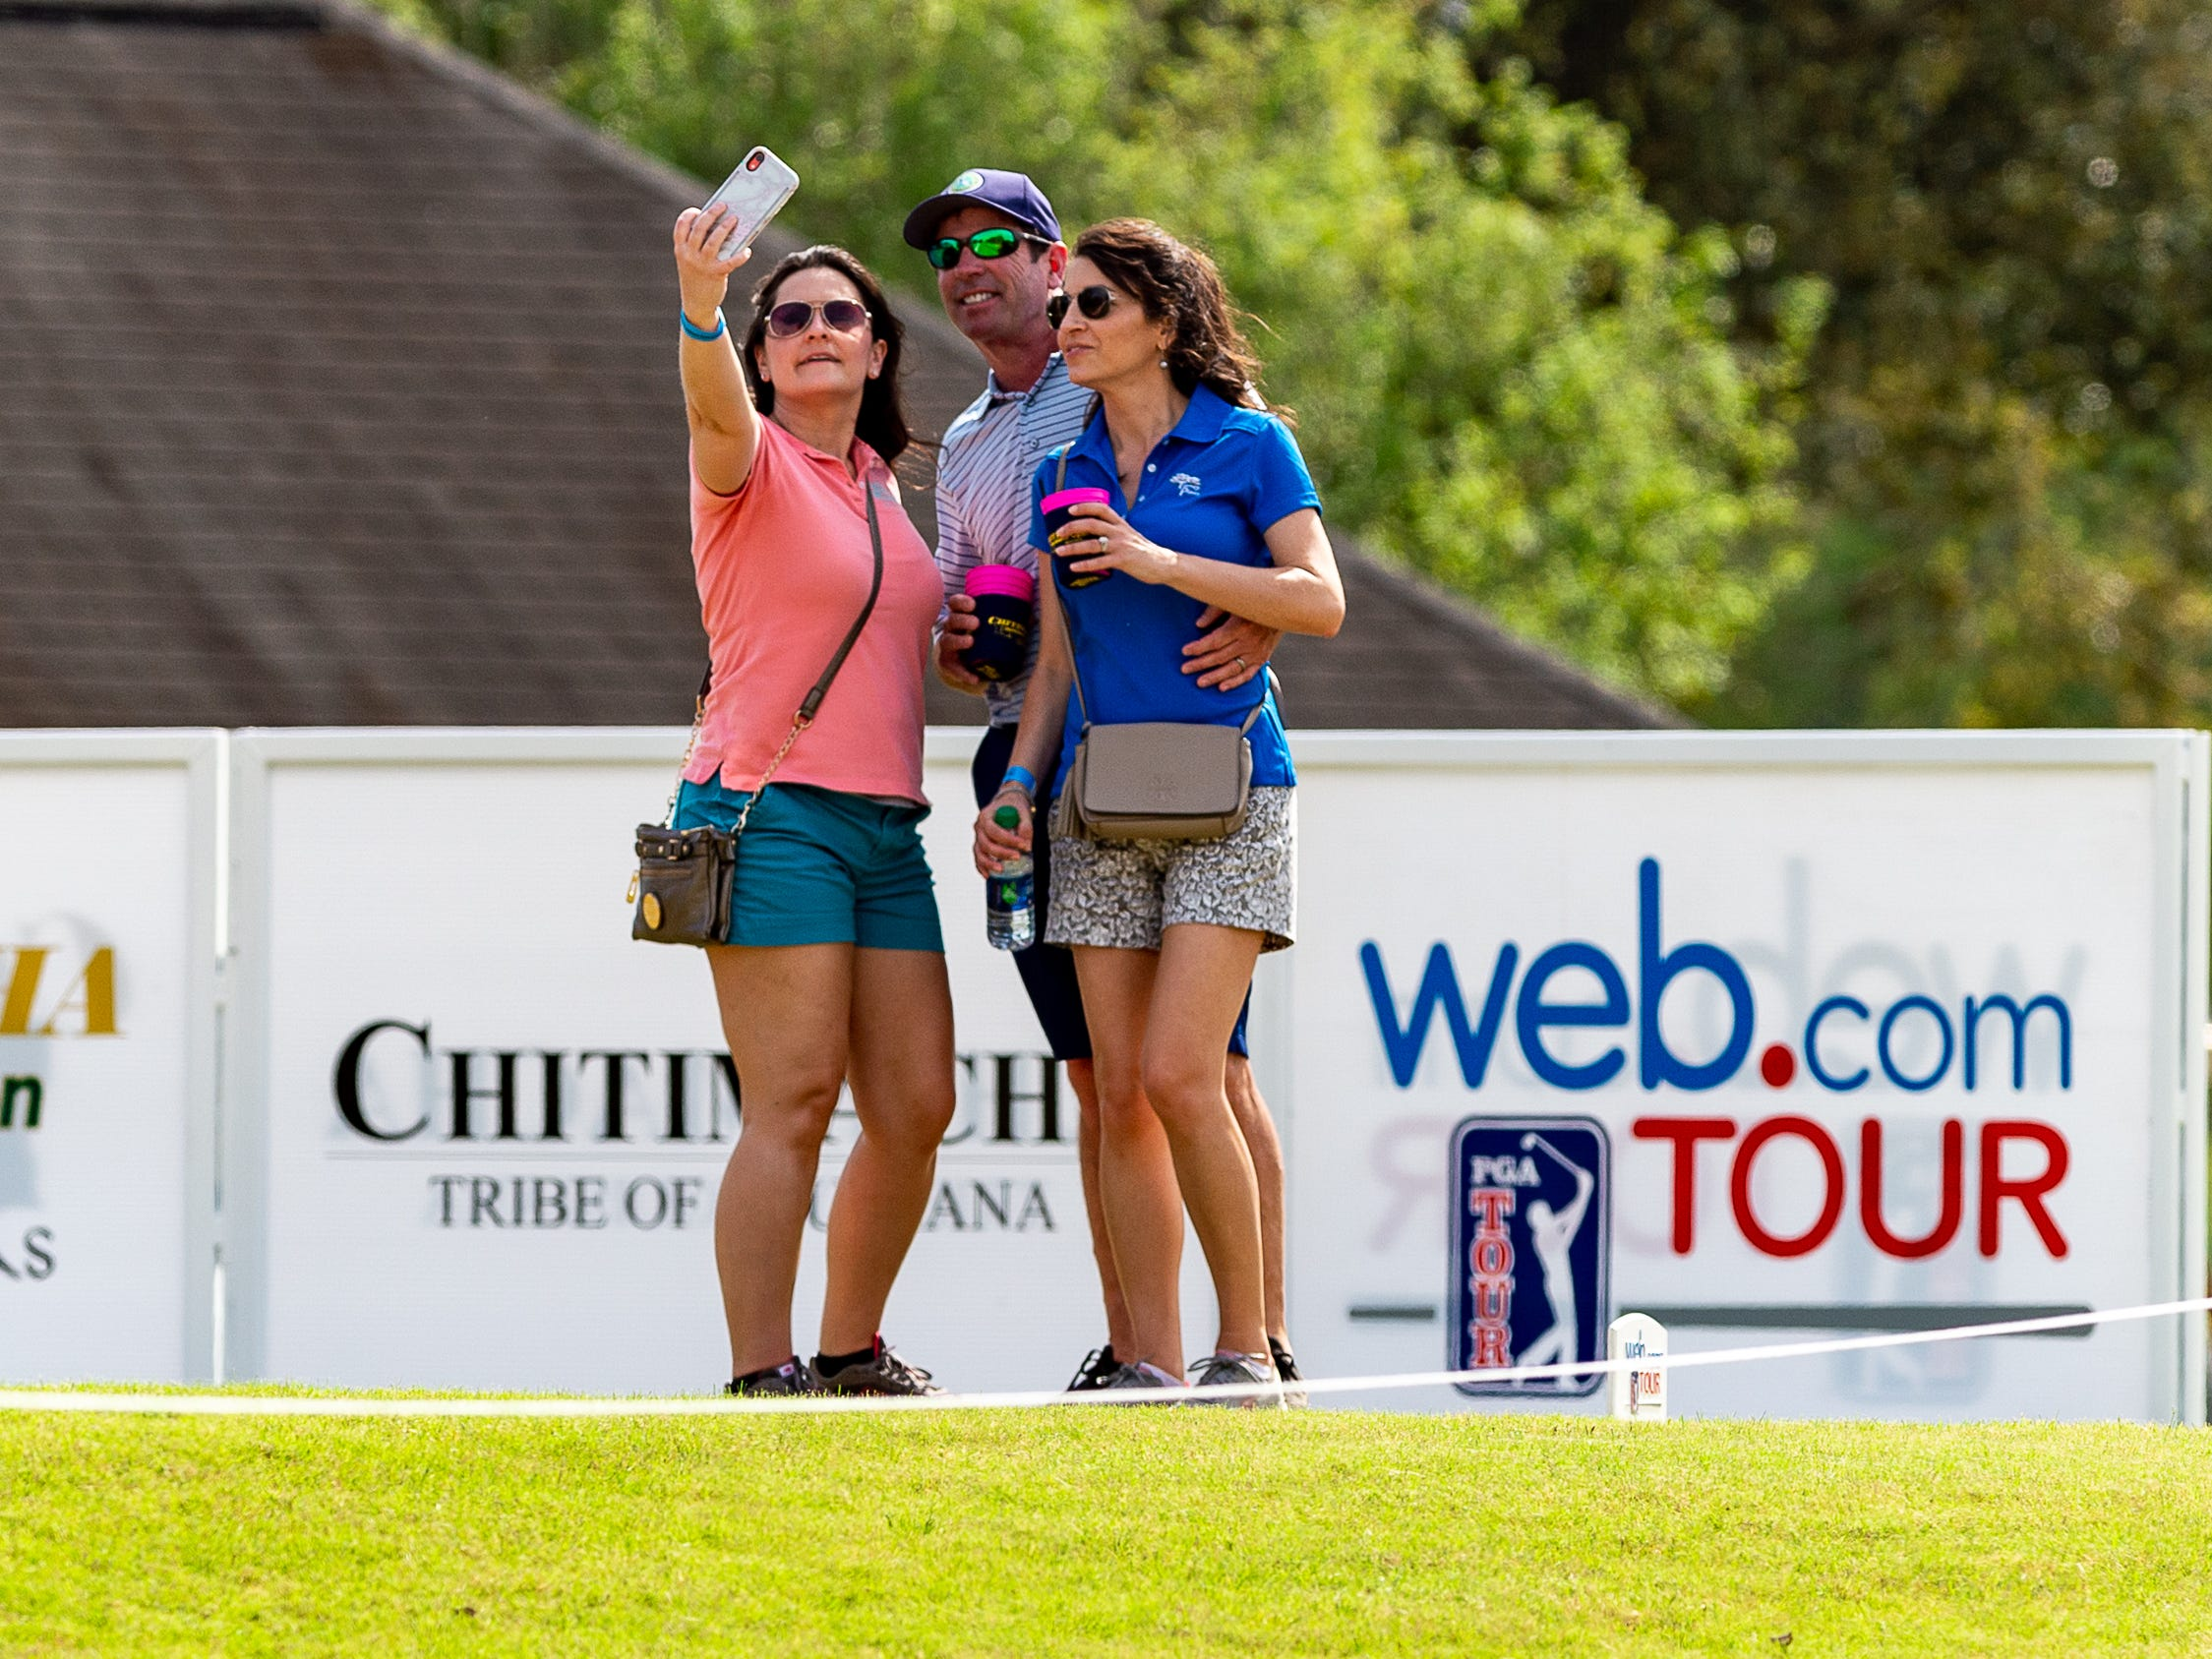 spectators taking time for a selfie during the third round of The Web.com Tour in Lafayette for the 2019 Chitimacha Louisiana Open at Le Triomphe. Saturday, March 23, 2019.